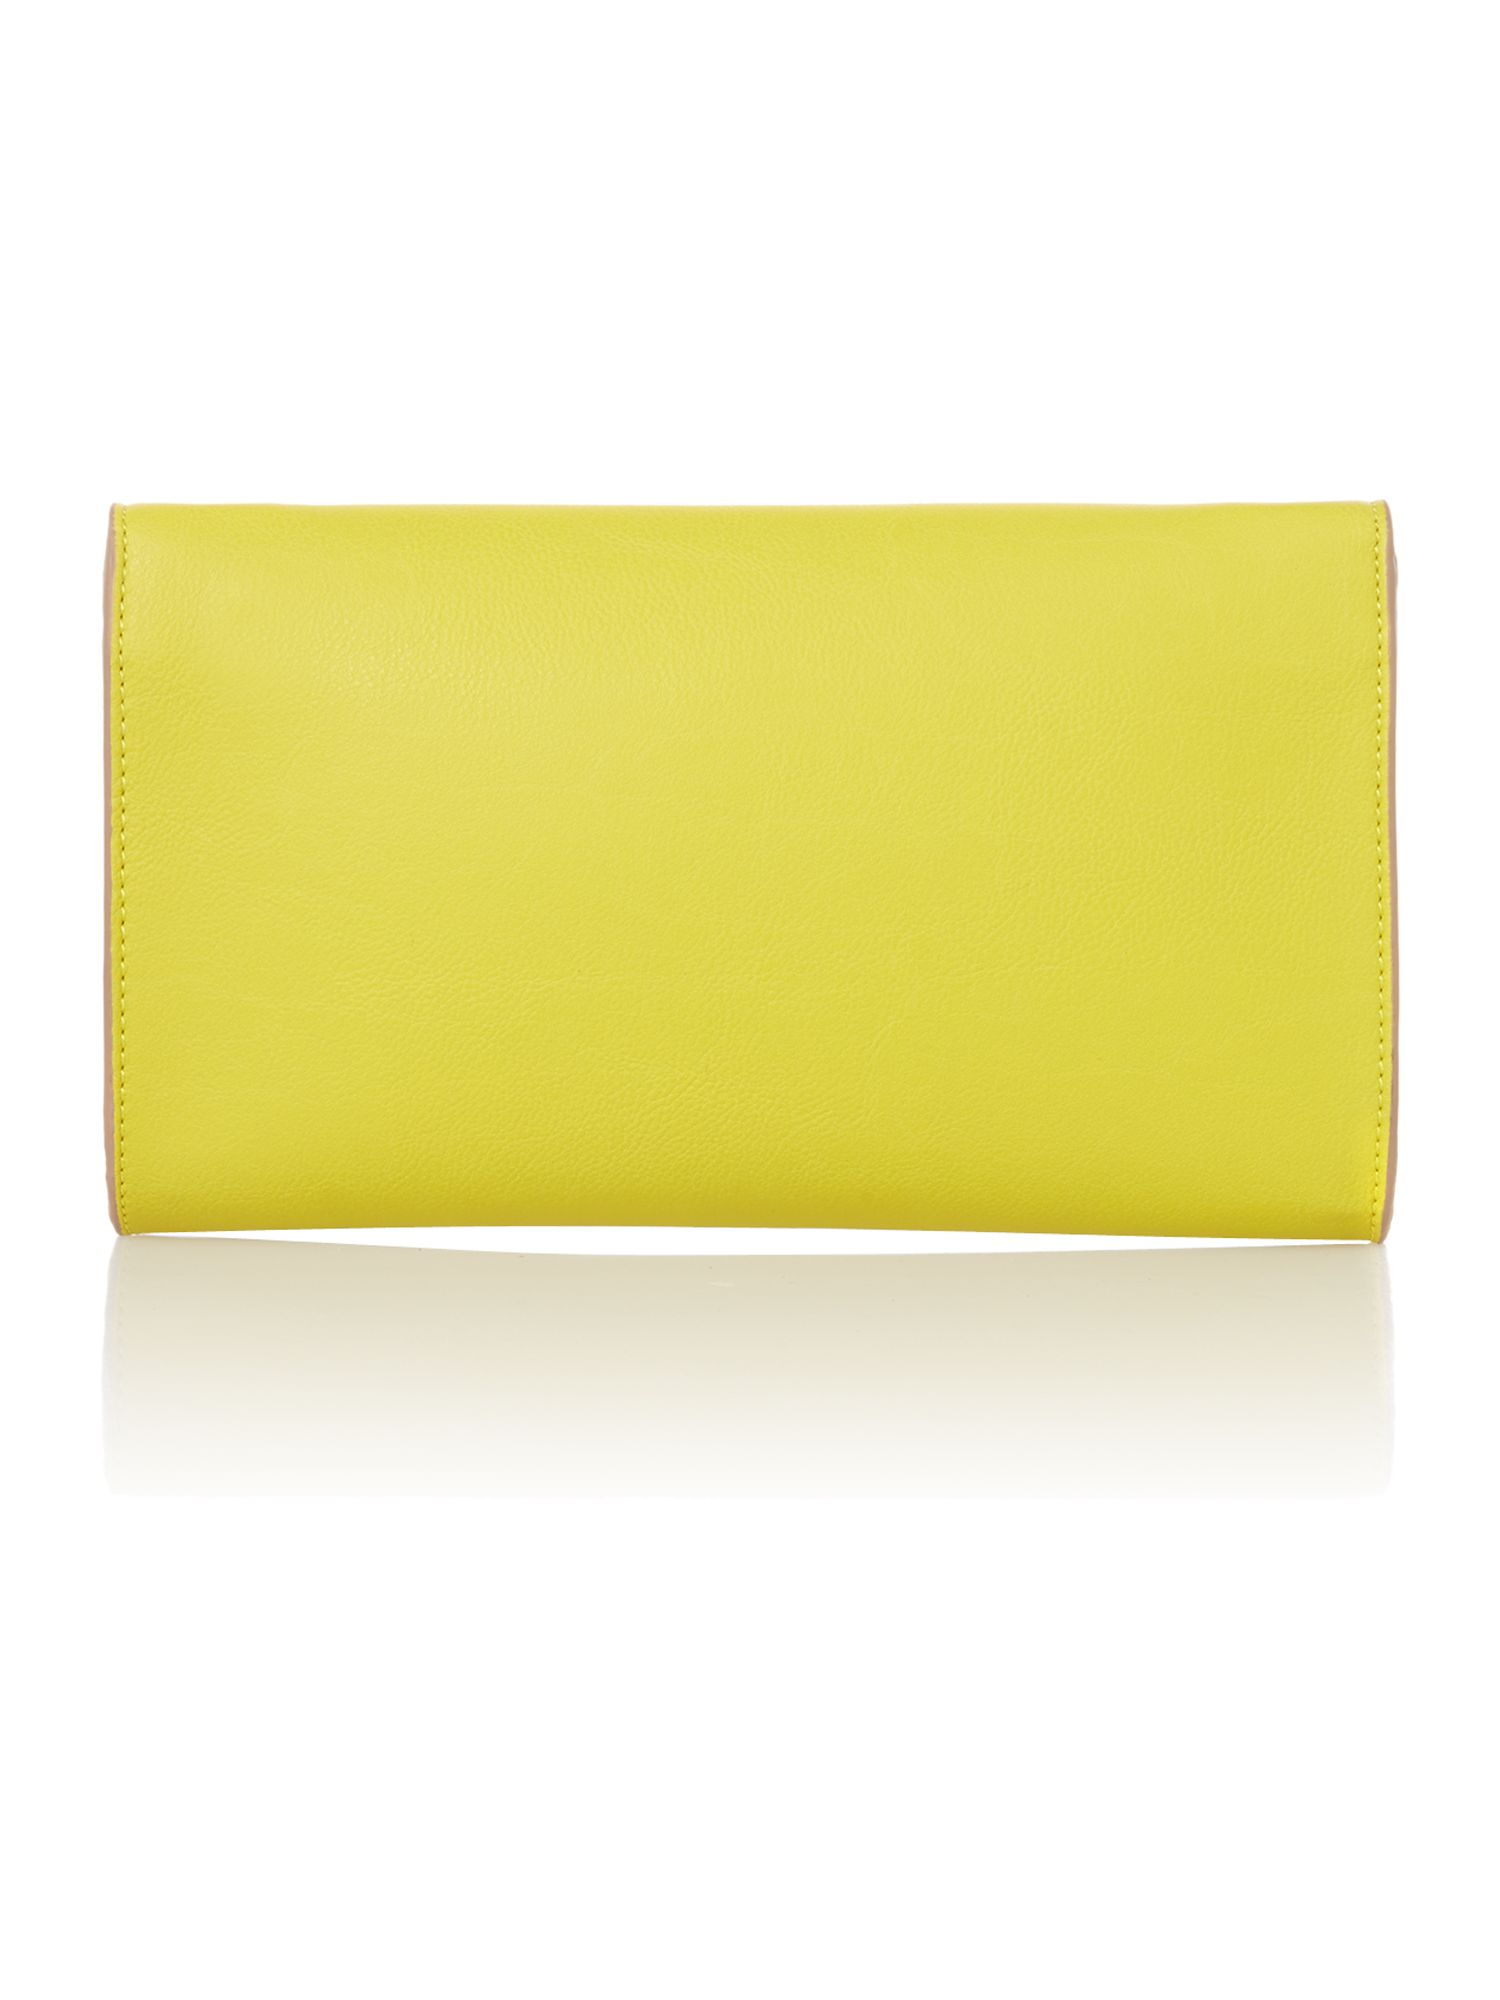 Dixie yellow clutch bag